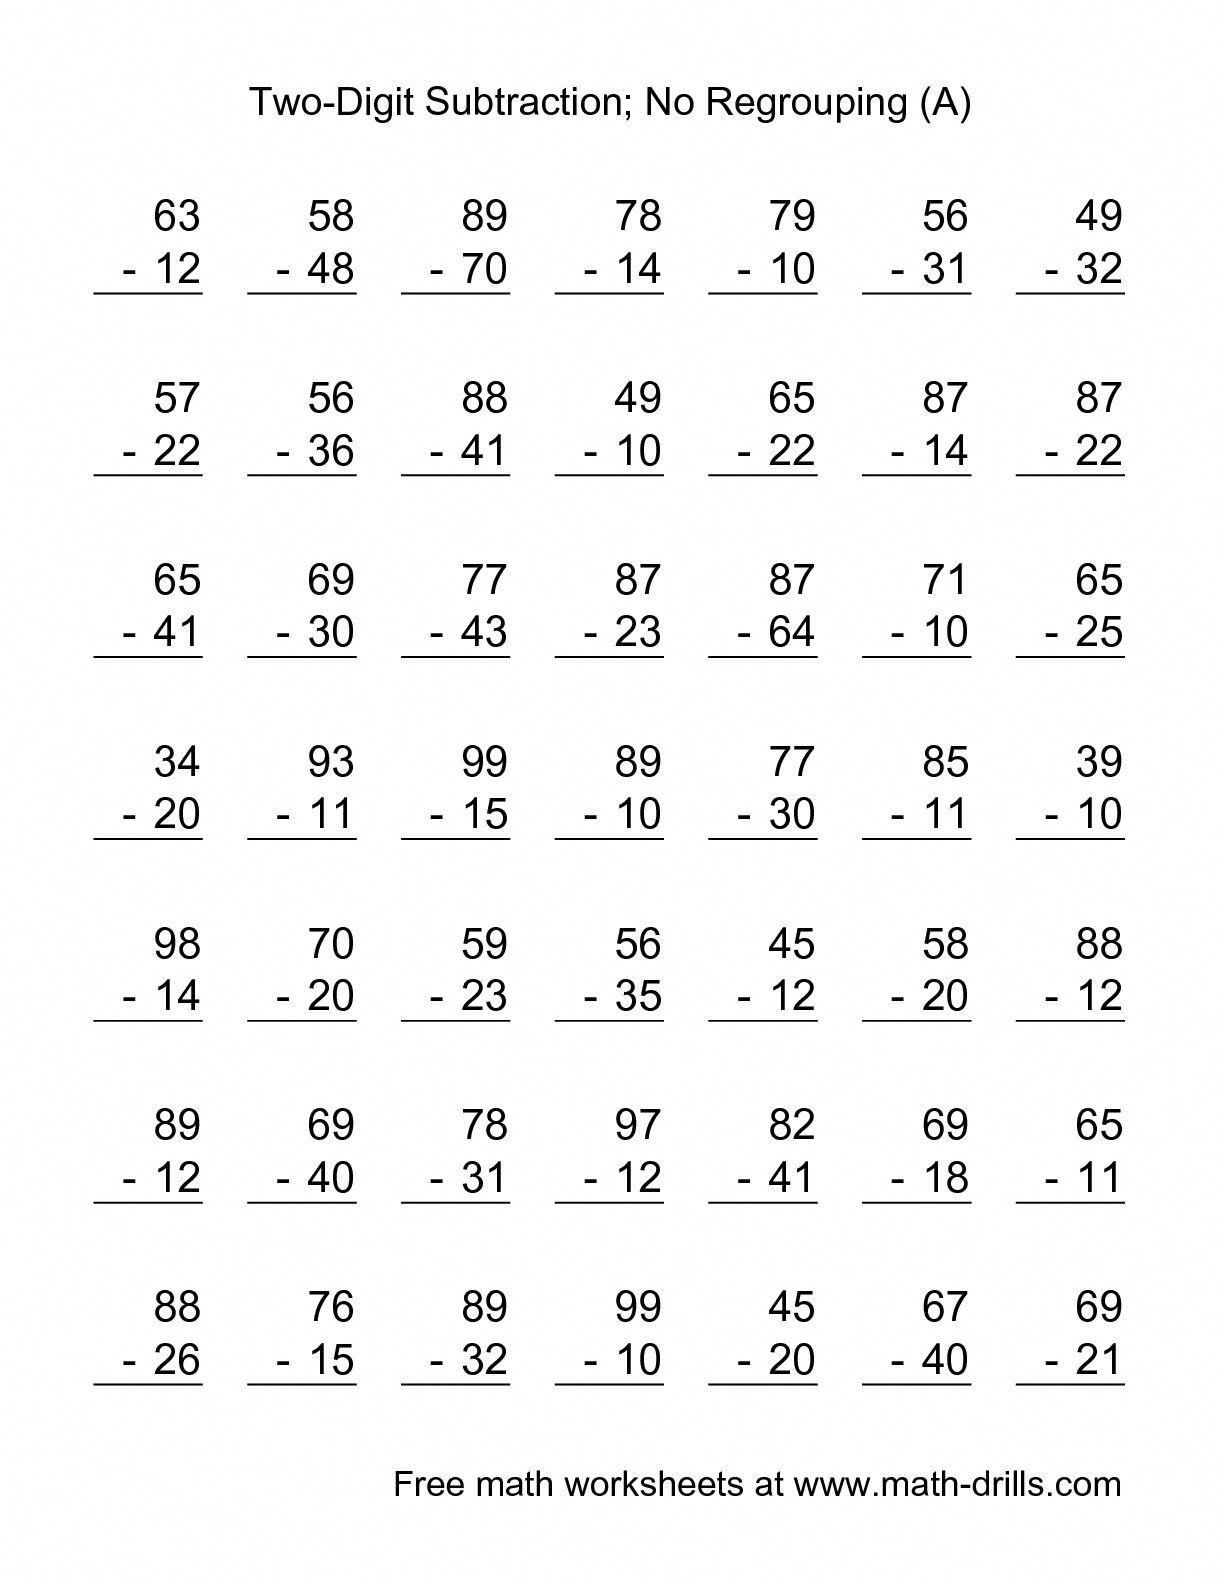 hight resolution of 4 Free Math Worksheets Second Grade 2 Subtraction Subtracting 1 Digit From  3 Digit Missing Number - apocalomegaproductions.com